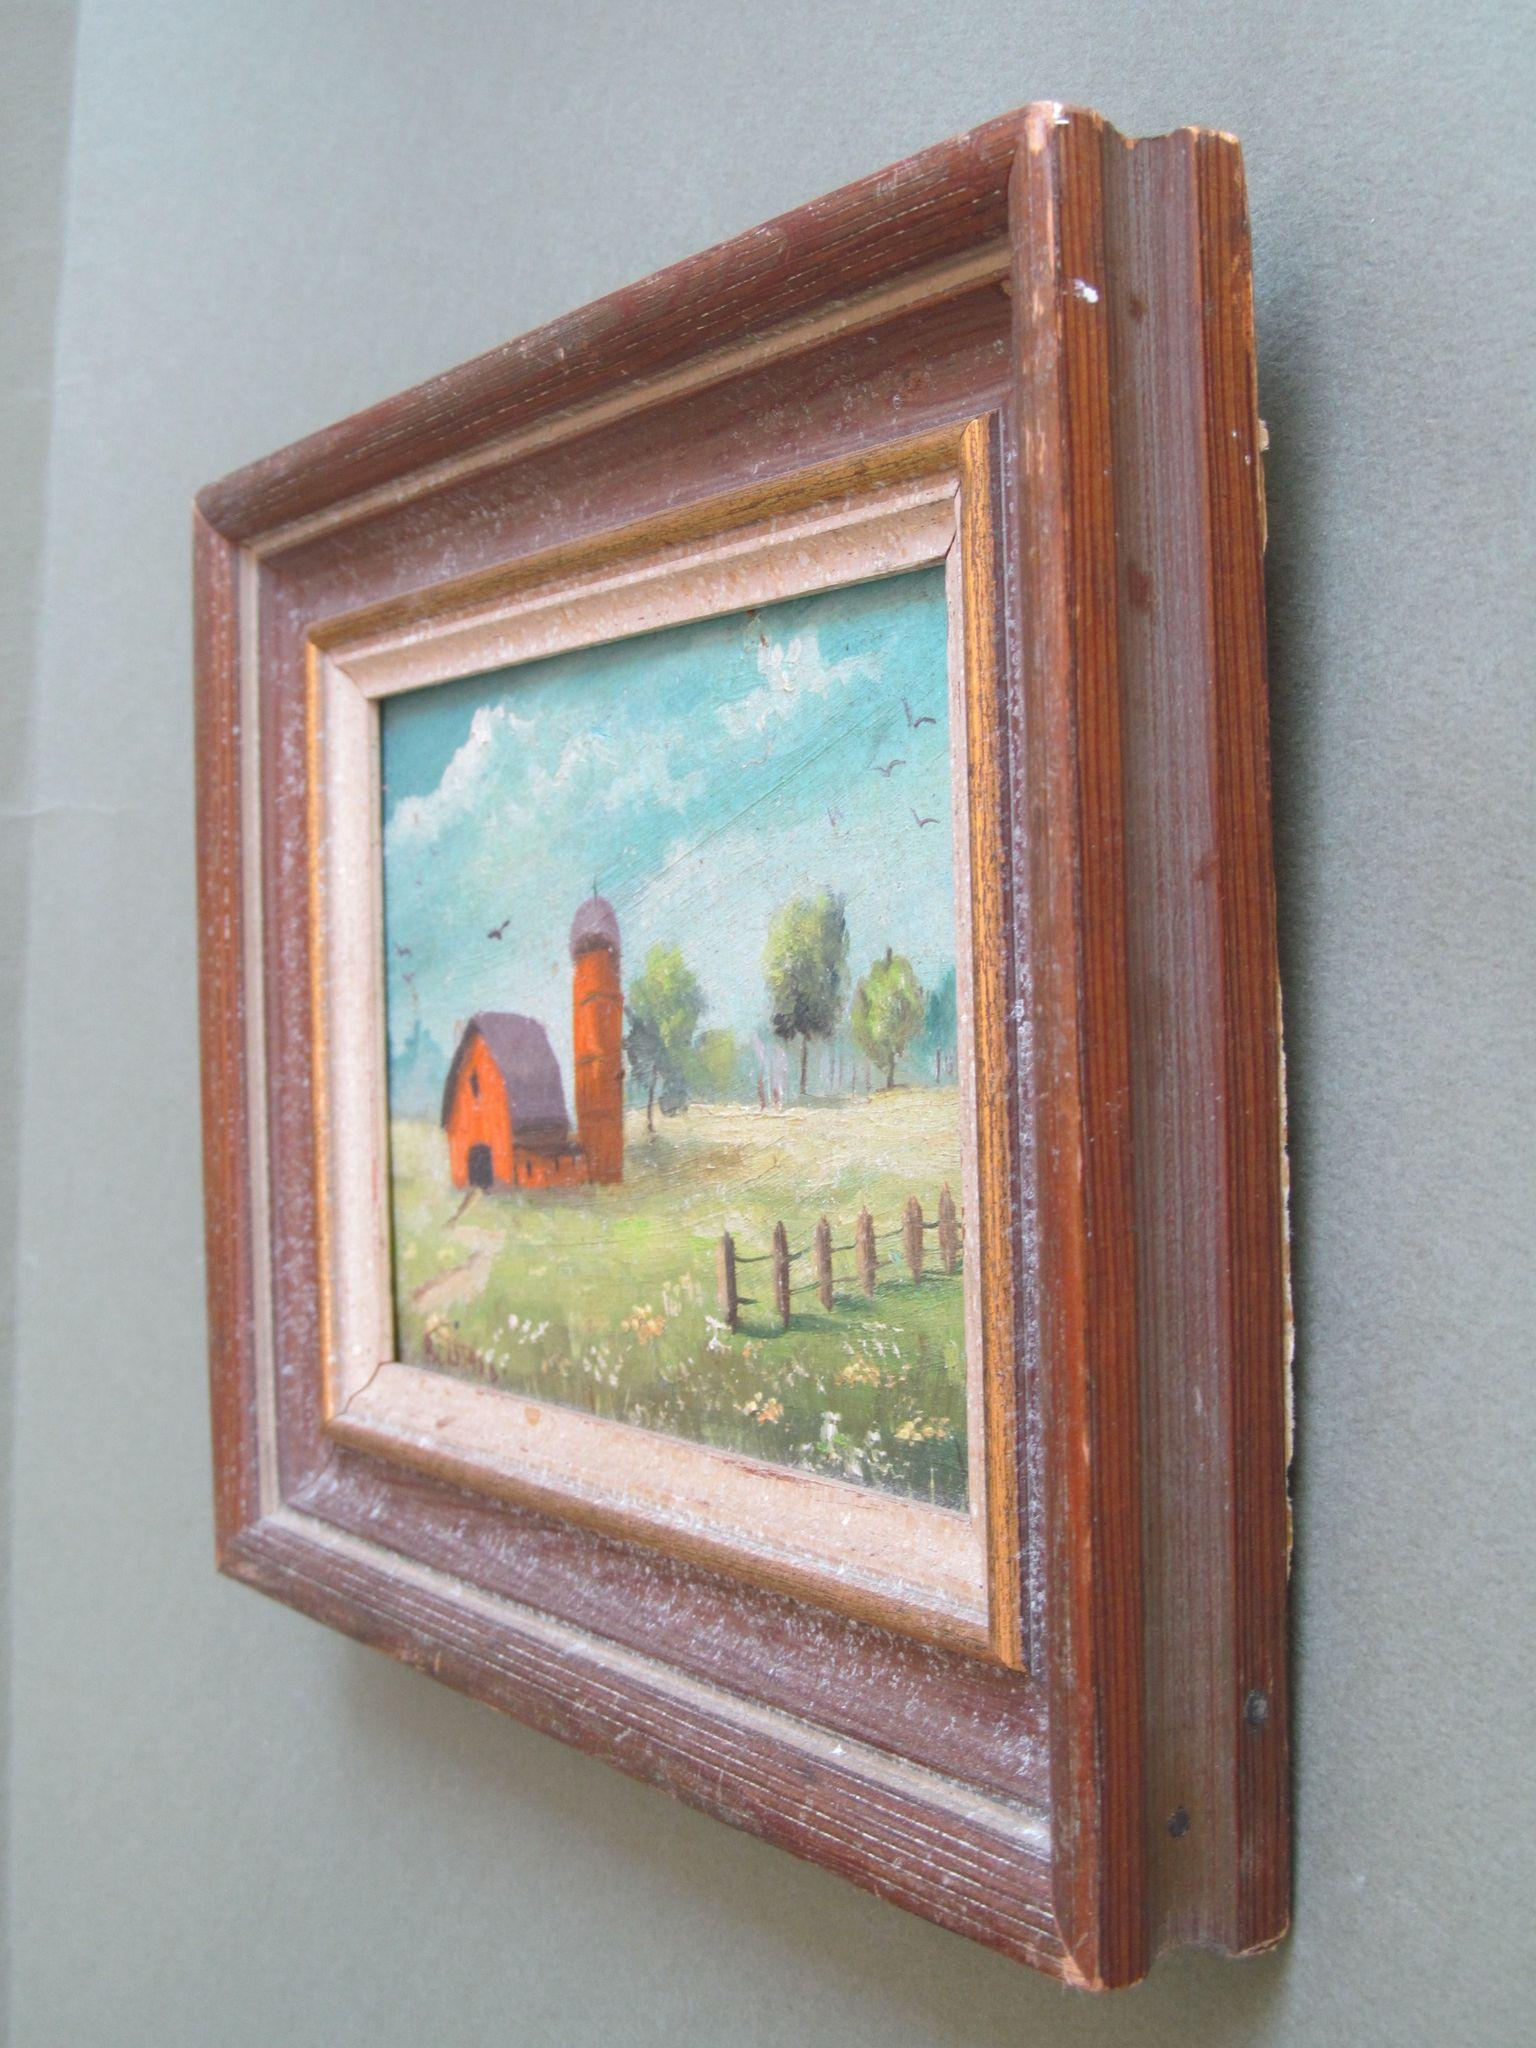 How Much To Sell A Wood Panel Oil Painting For